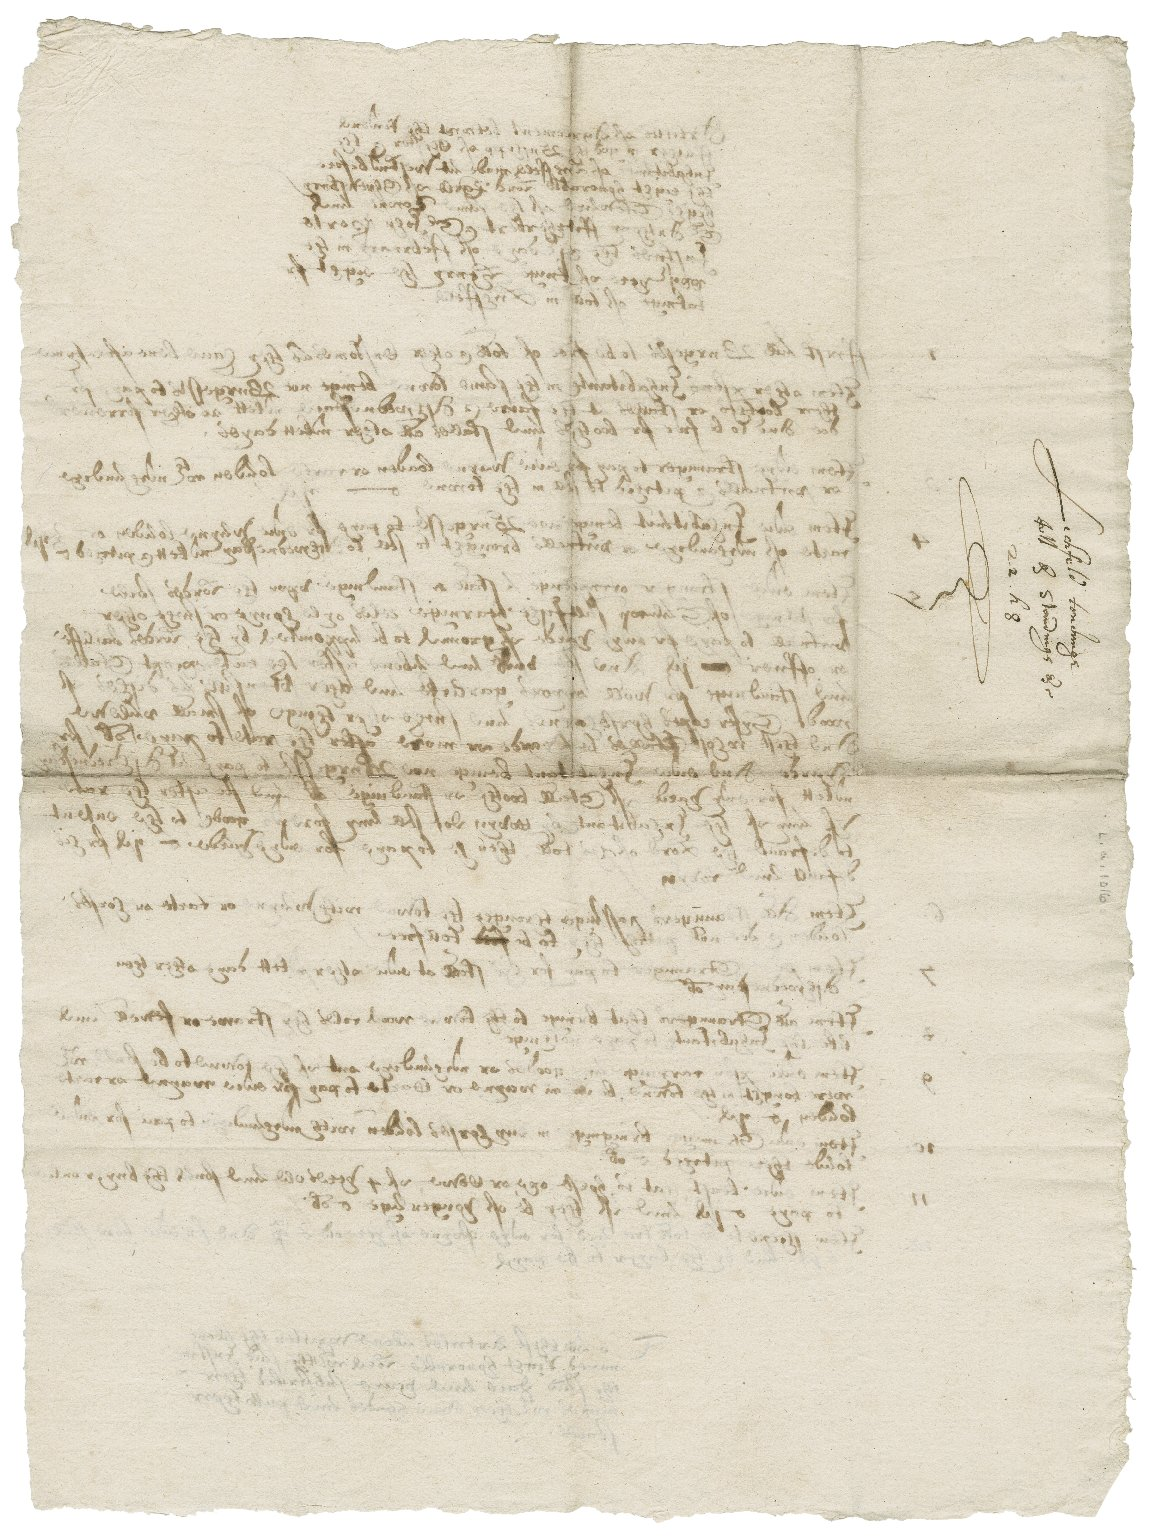 Articles of agreement between Geoffrey Blythe, Bishop of Chester (i.e., Lichfield and Coventry), and the inhabitants of Lichfield: copy